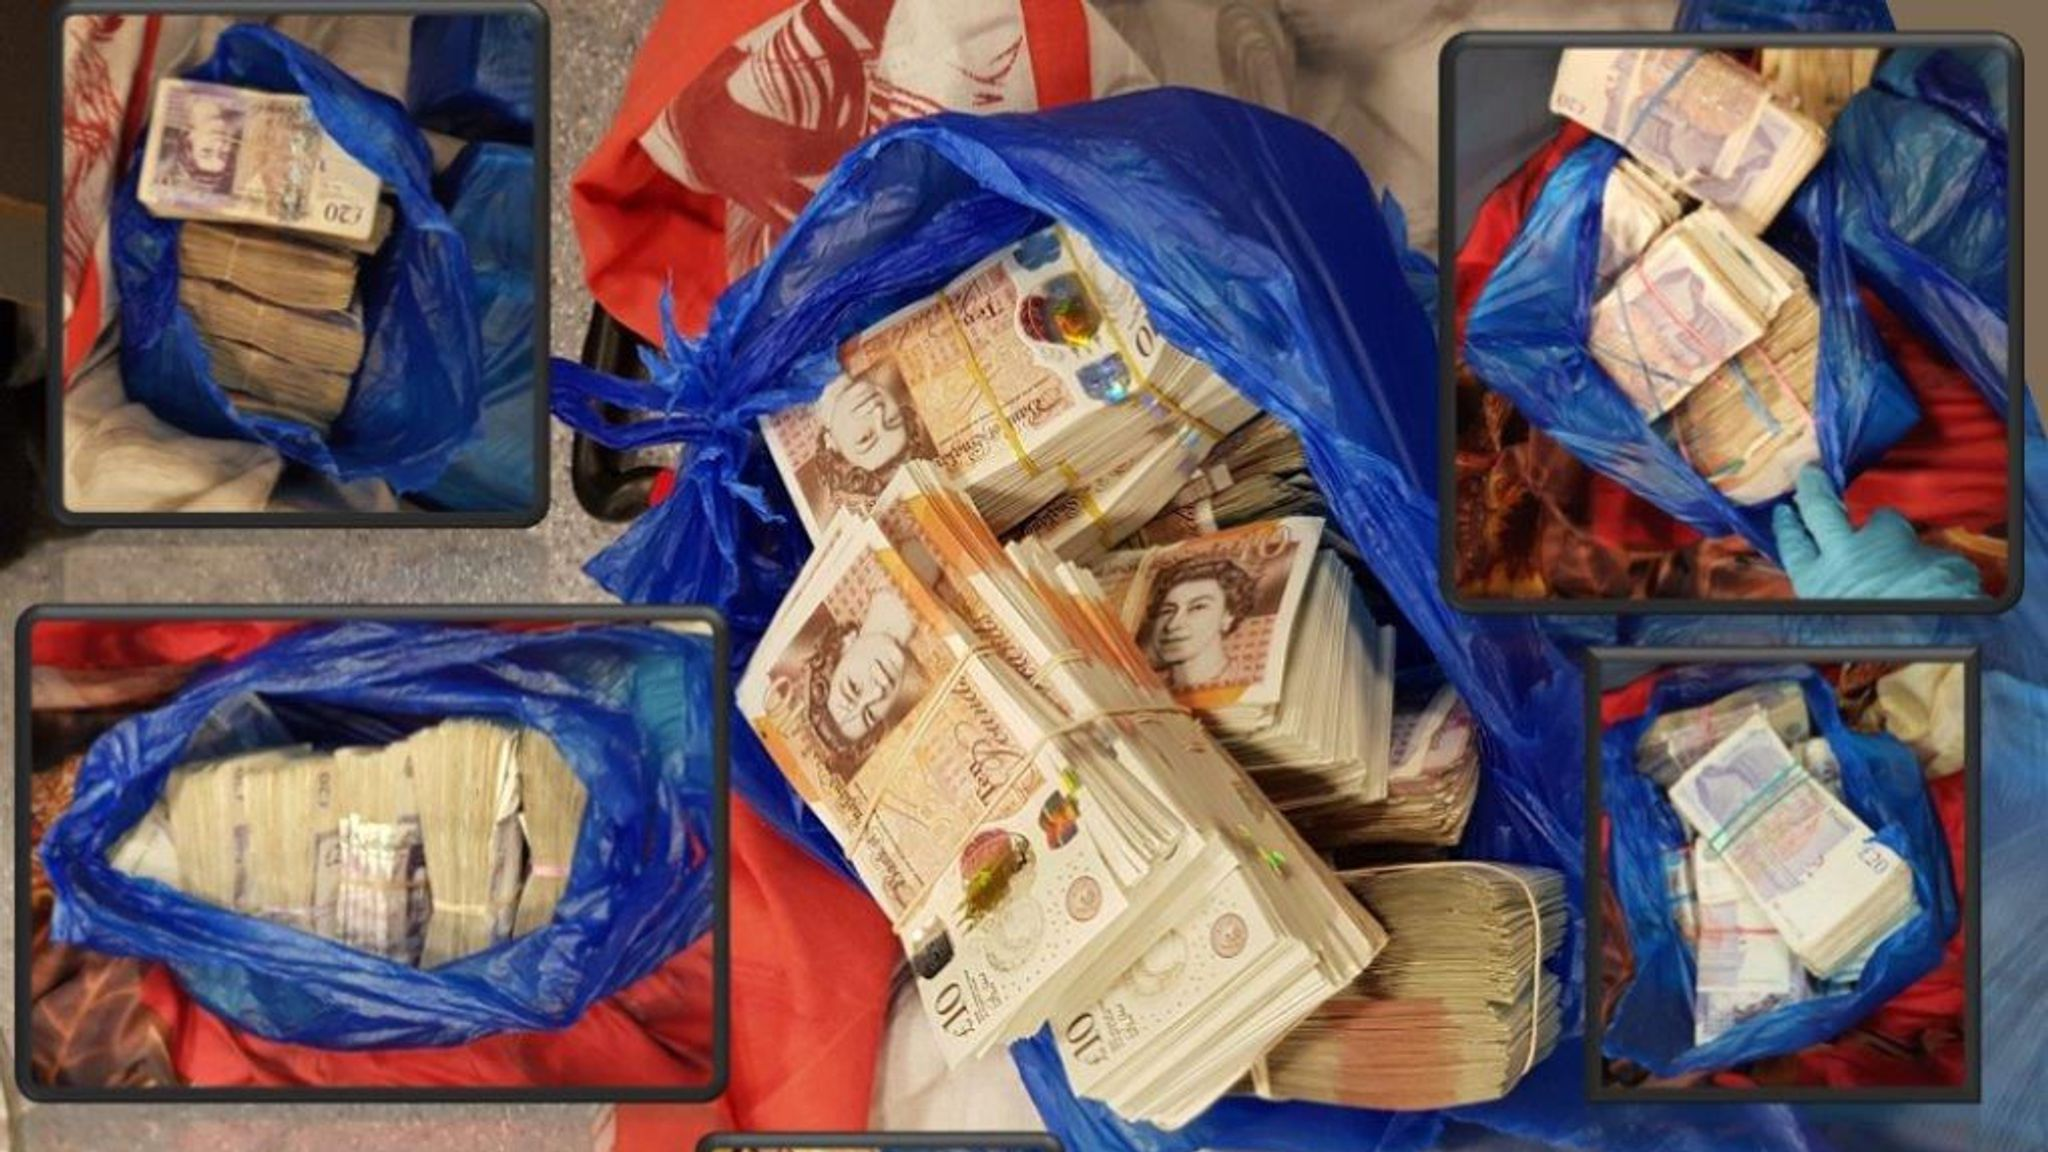 Ten arrested in London after '£15m smuggled from UK to Dubai hidden in suitcases'